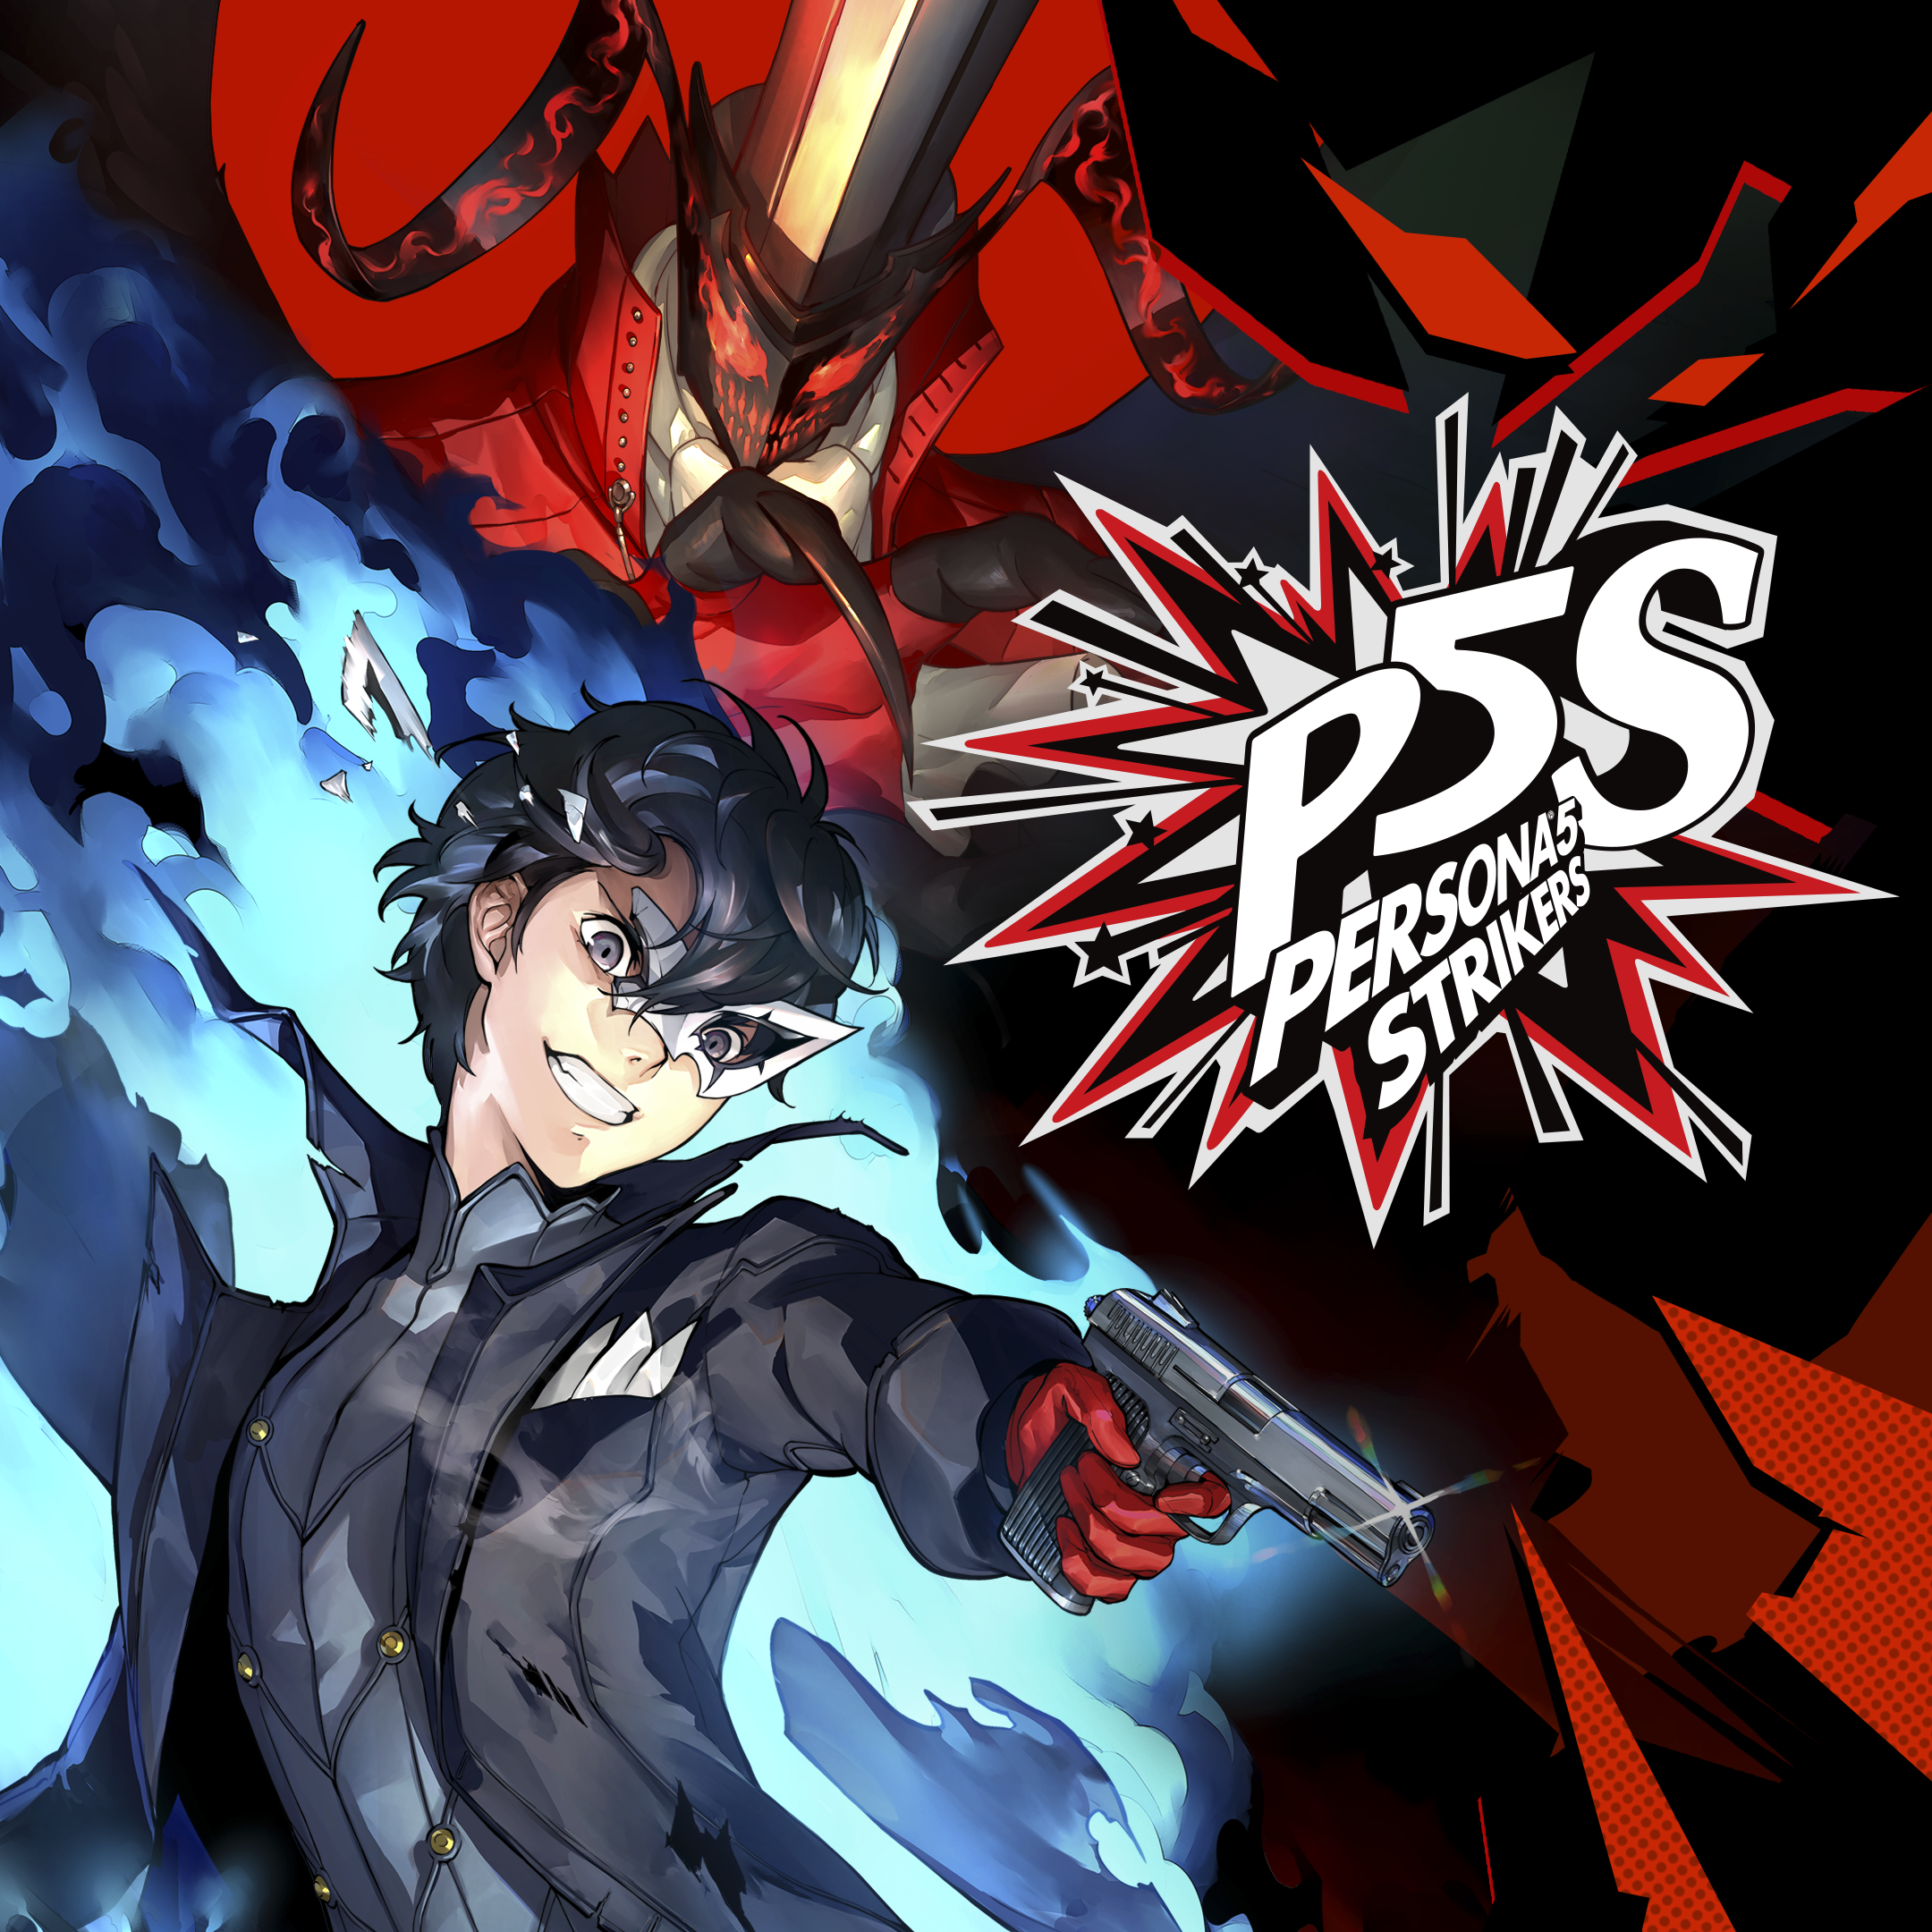 Persona 5 STRIKERS - Standard Edition Store Art